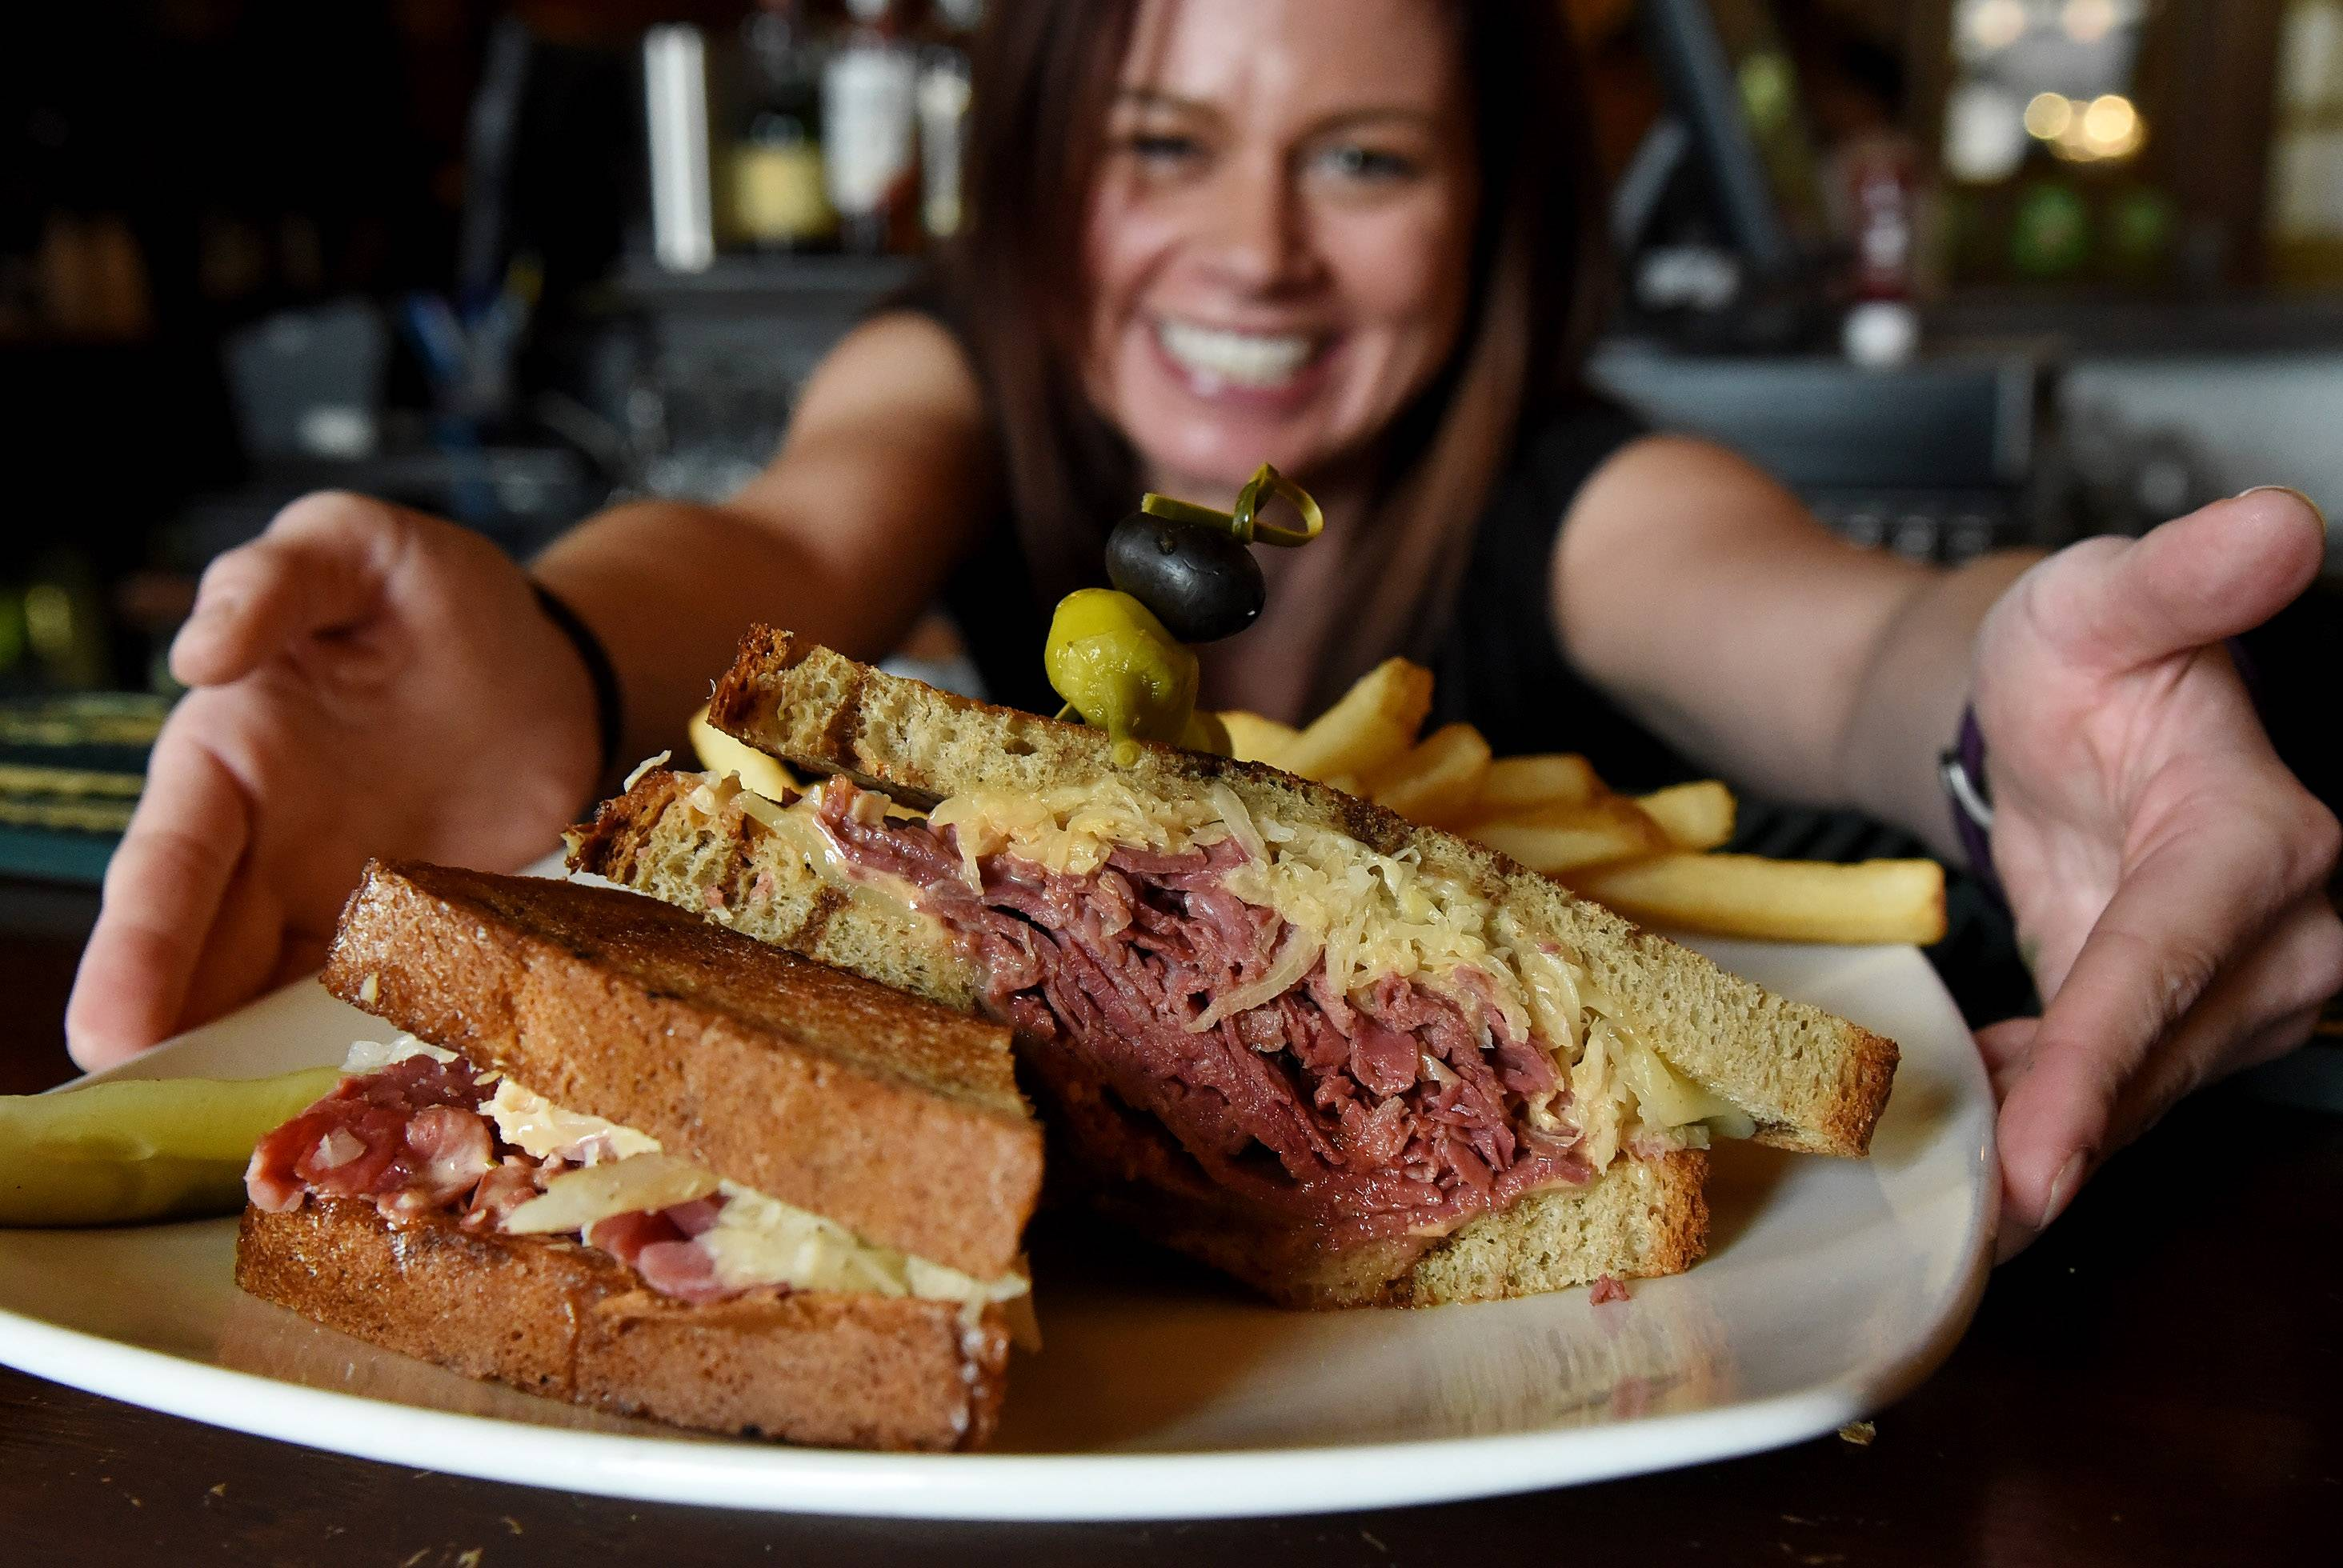 Bartender and manager Chrissy Barnard serves up a traditional corned beef on rye sandwich with sauerkraut at McGonigal's Pub in Barrington.